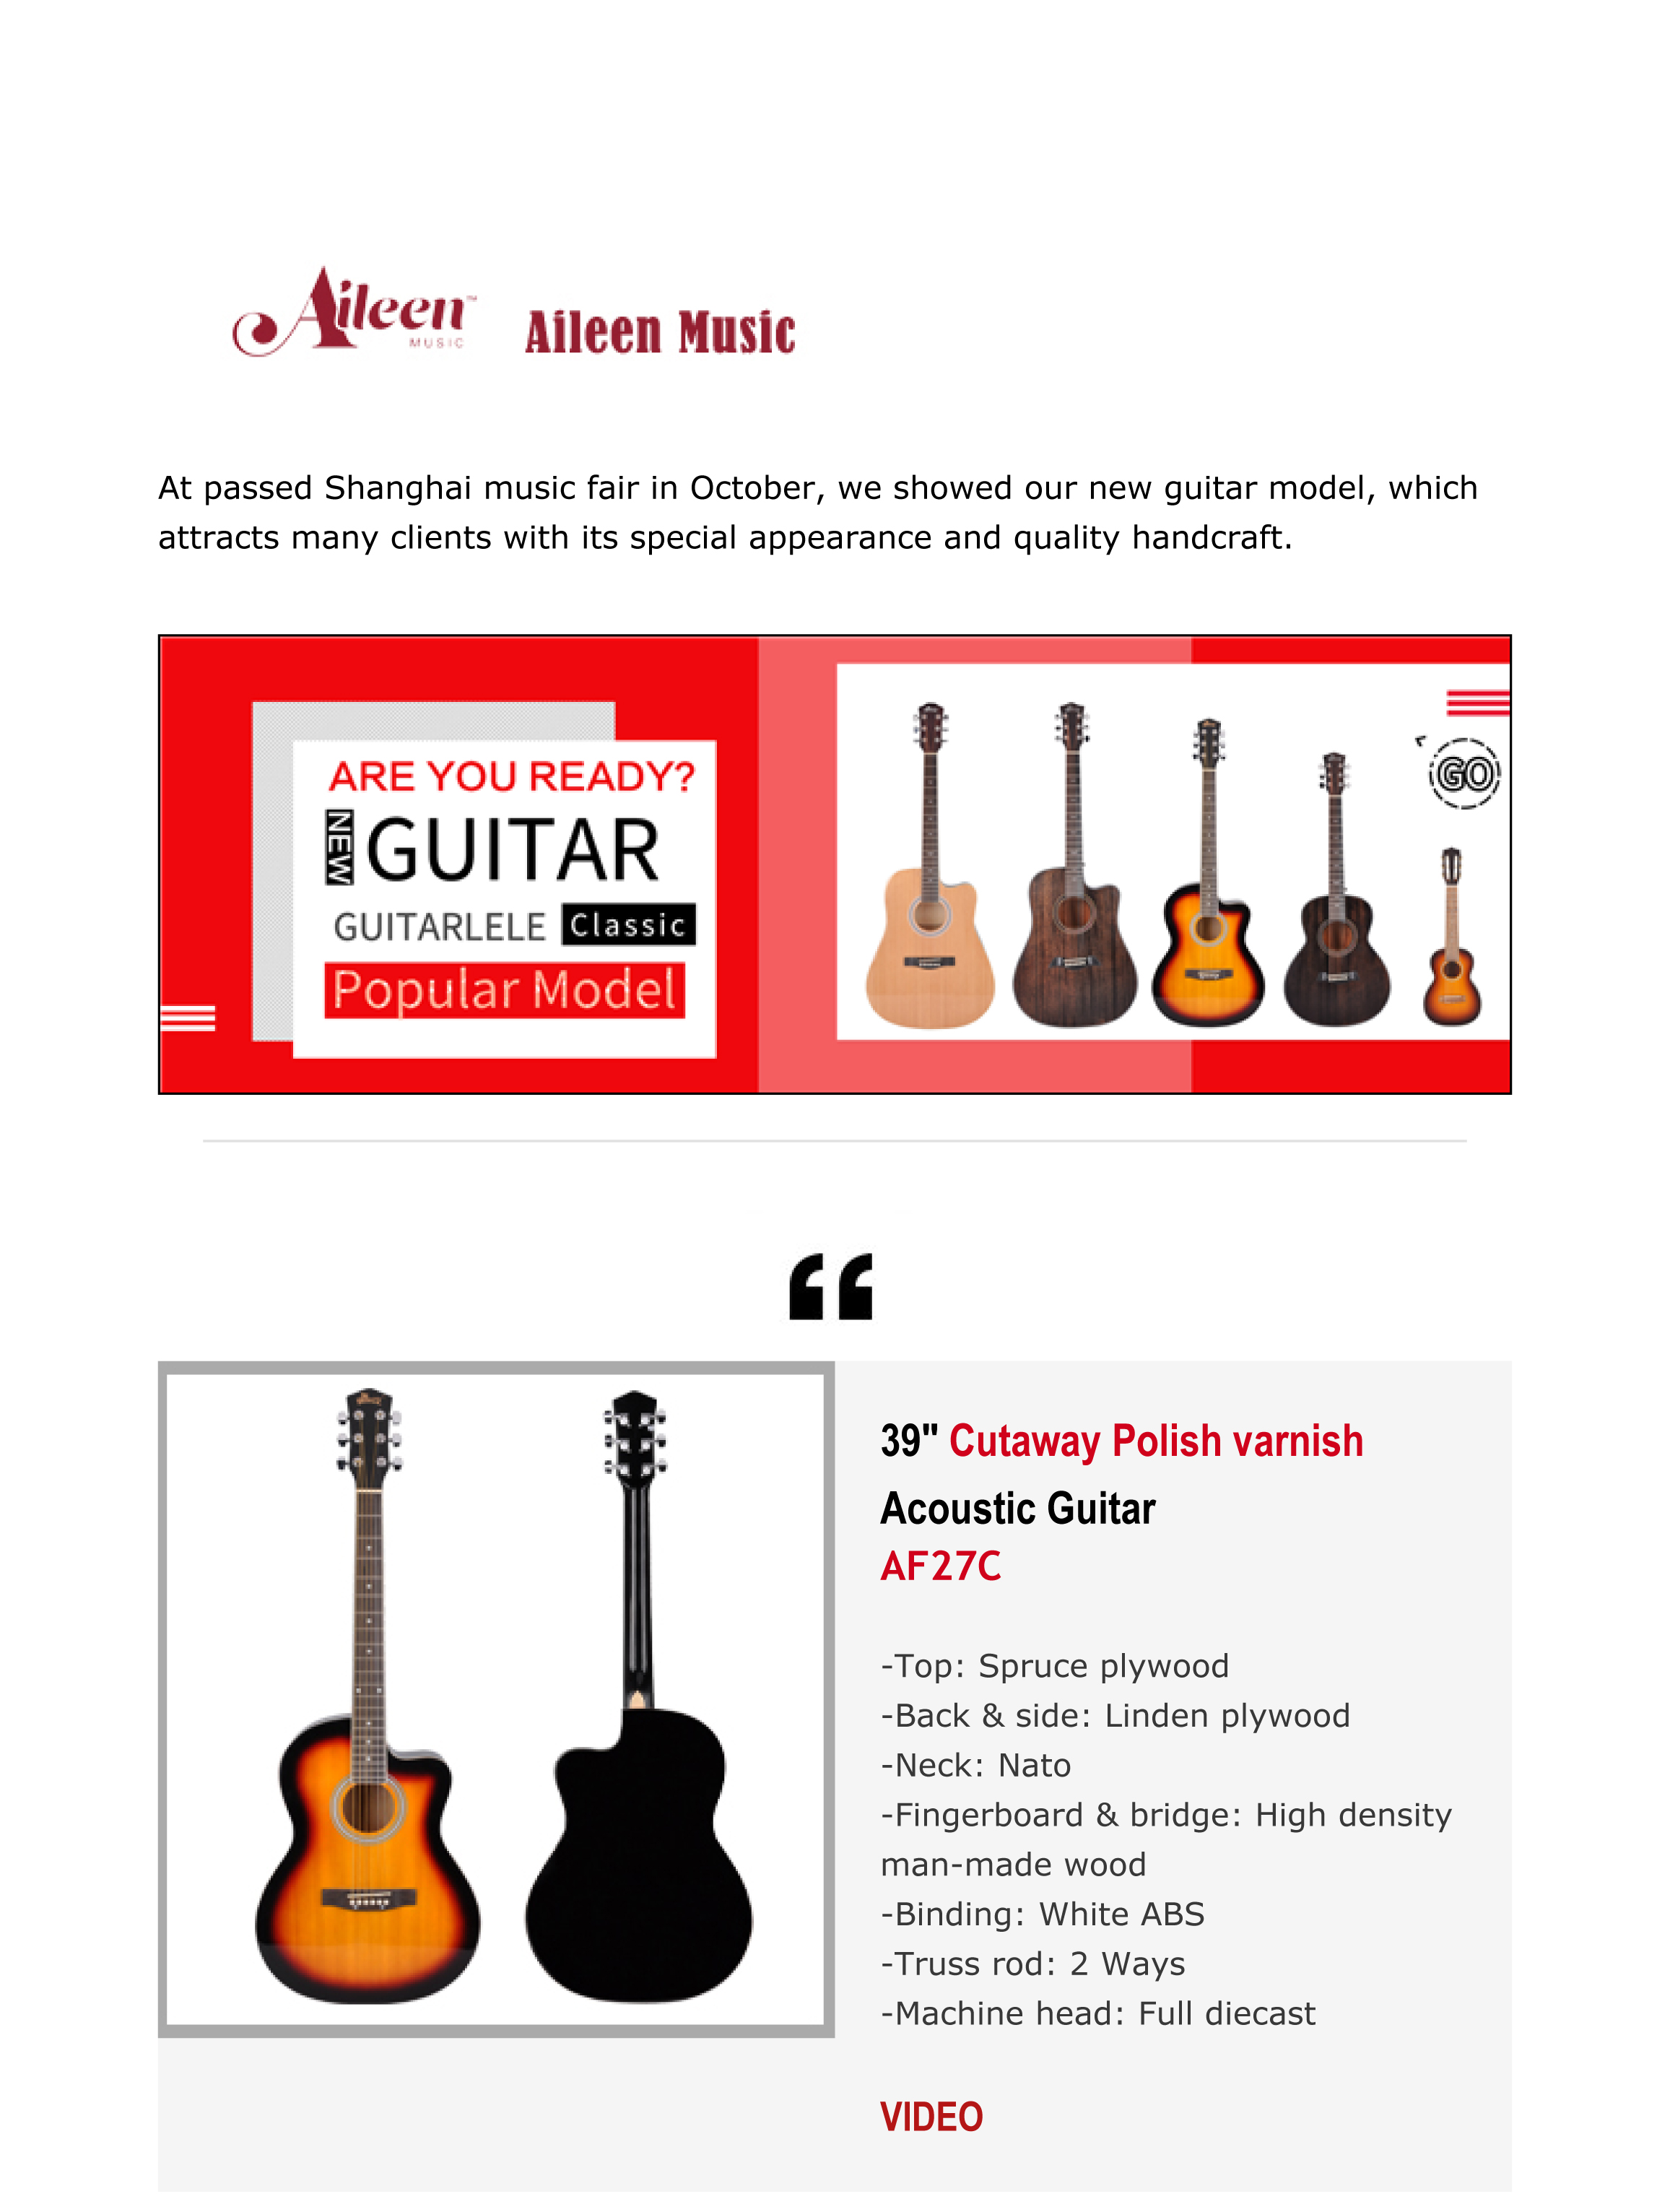 See What New High Quality Guitars Aileen Music Developed For